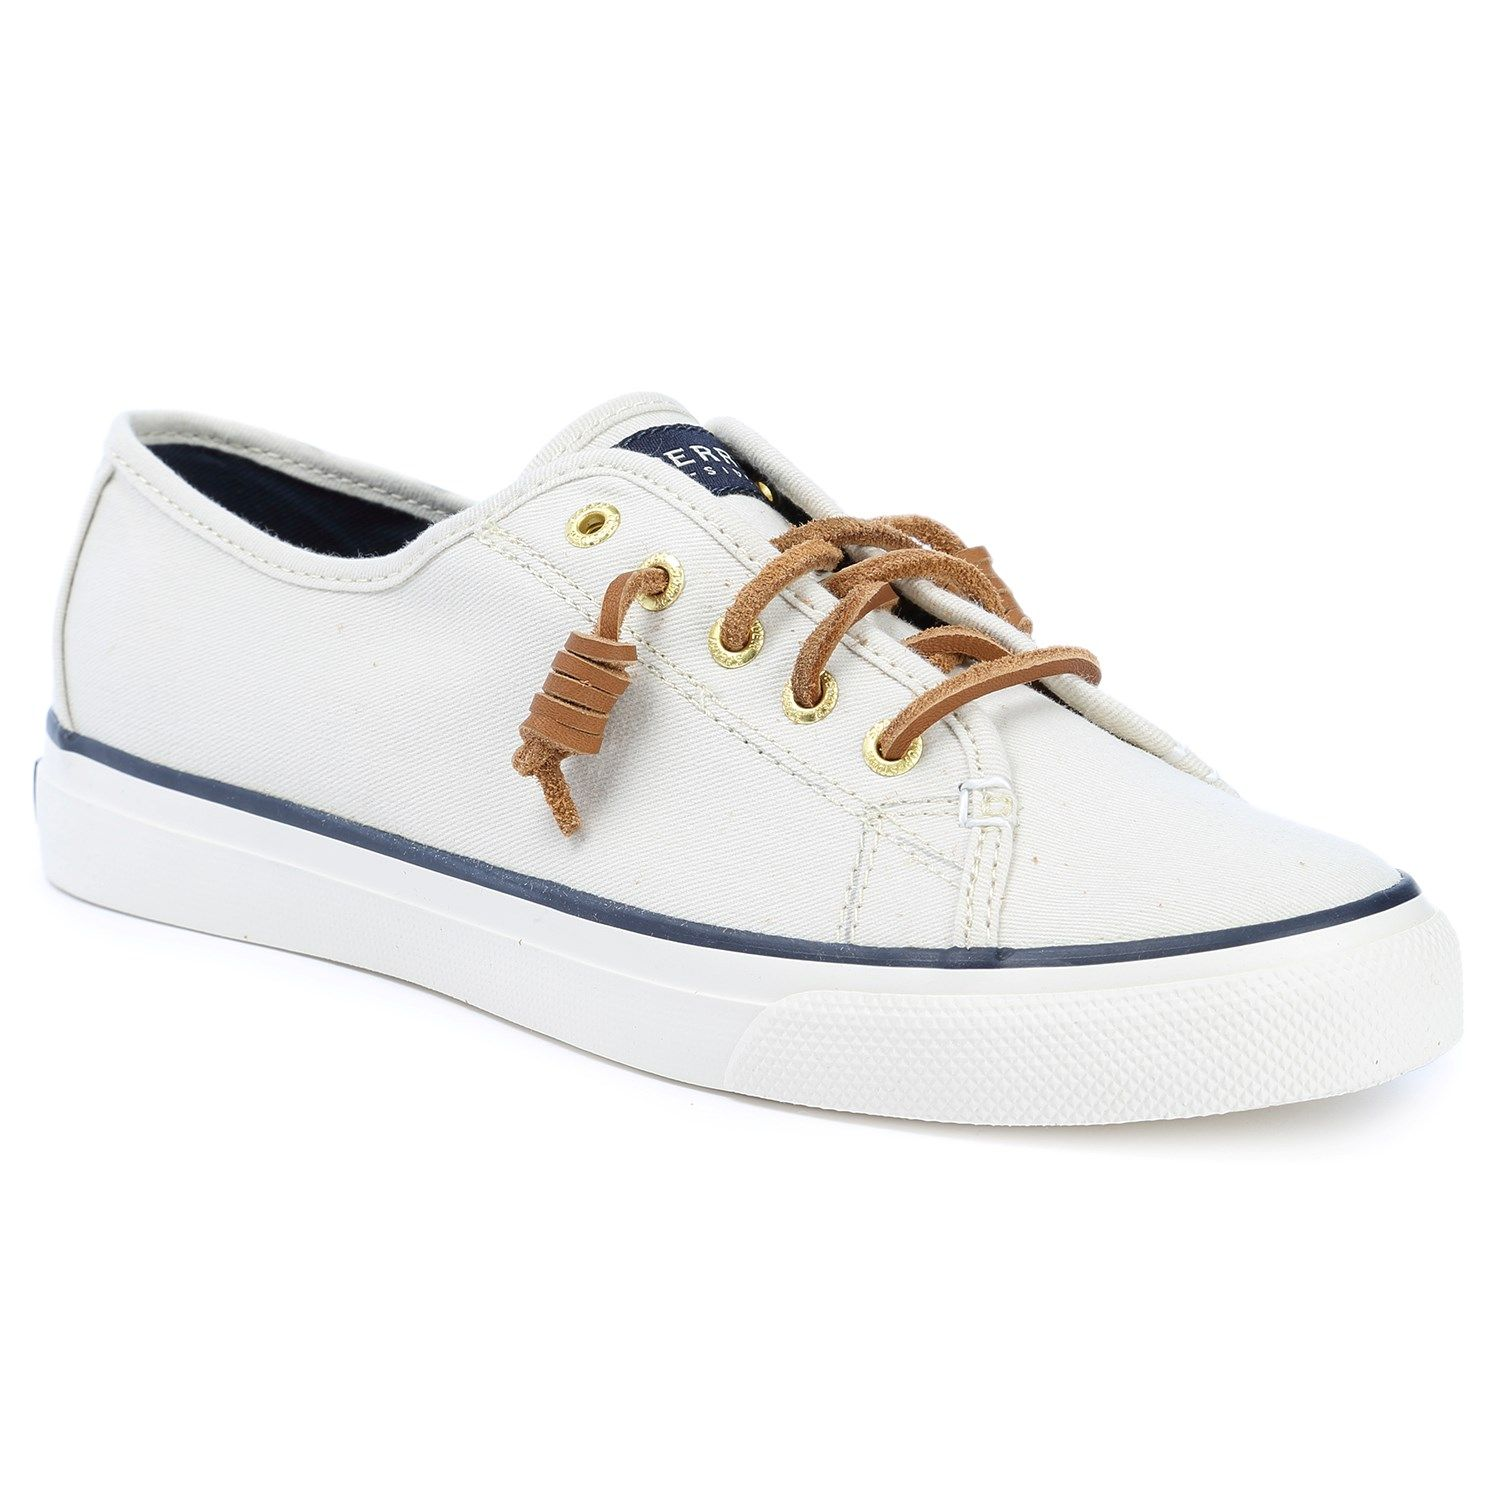 Sperry Top-Sider Seacoast Shoes - Women's